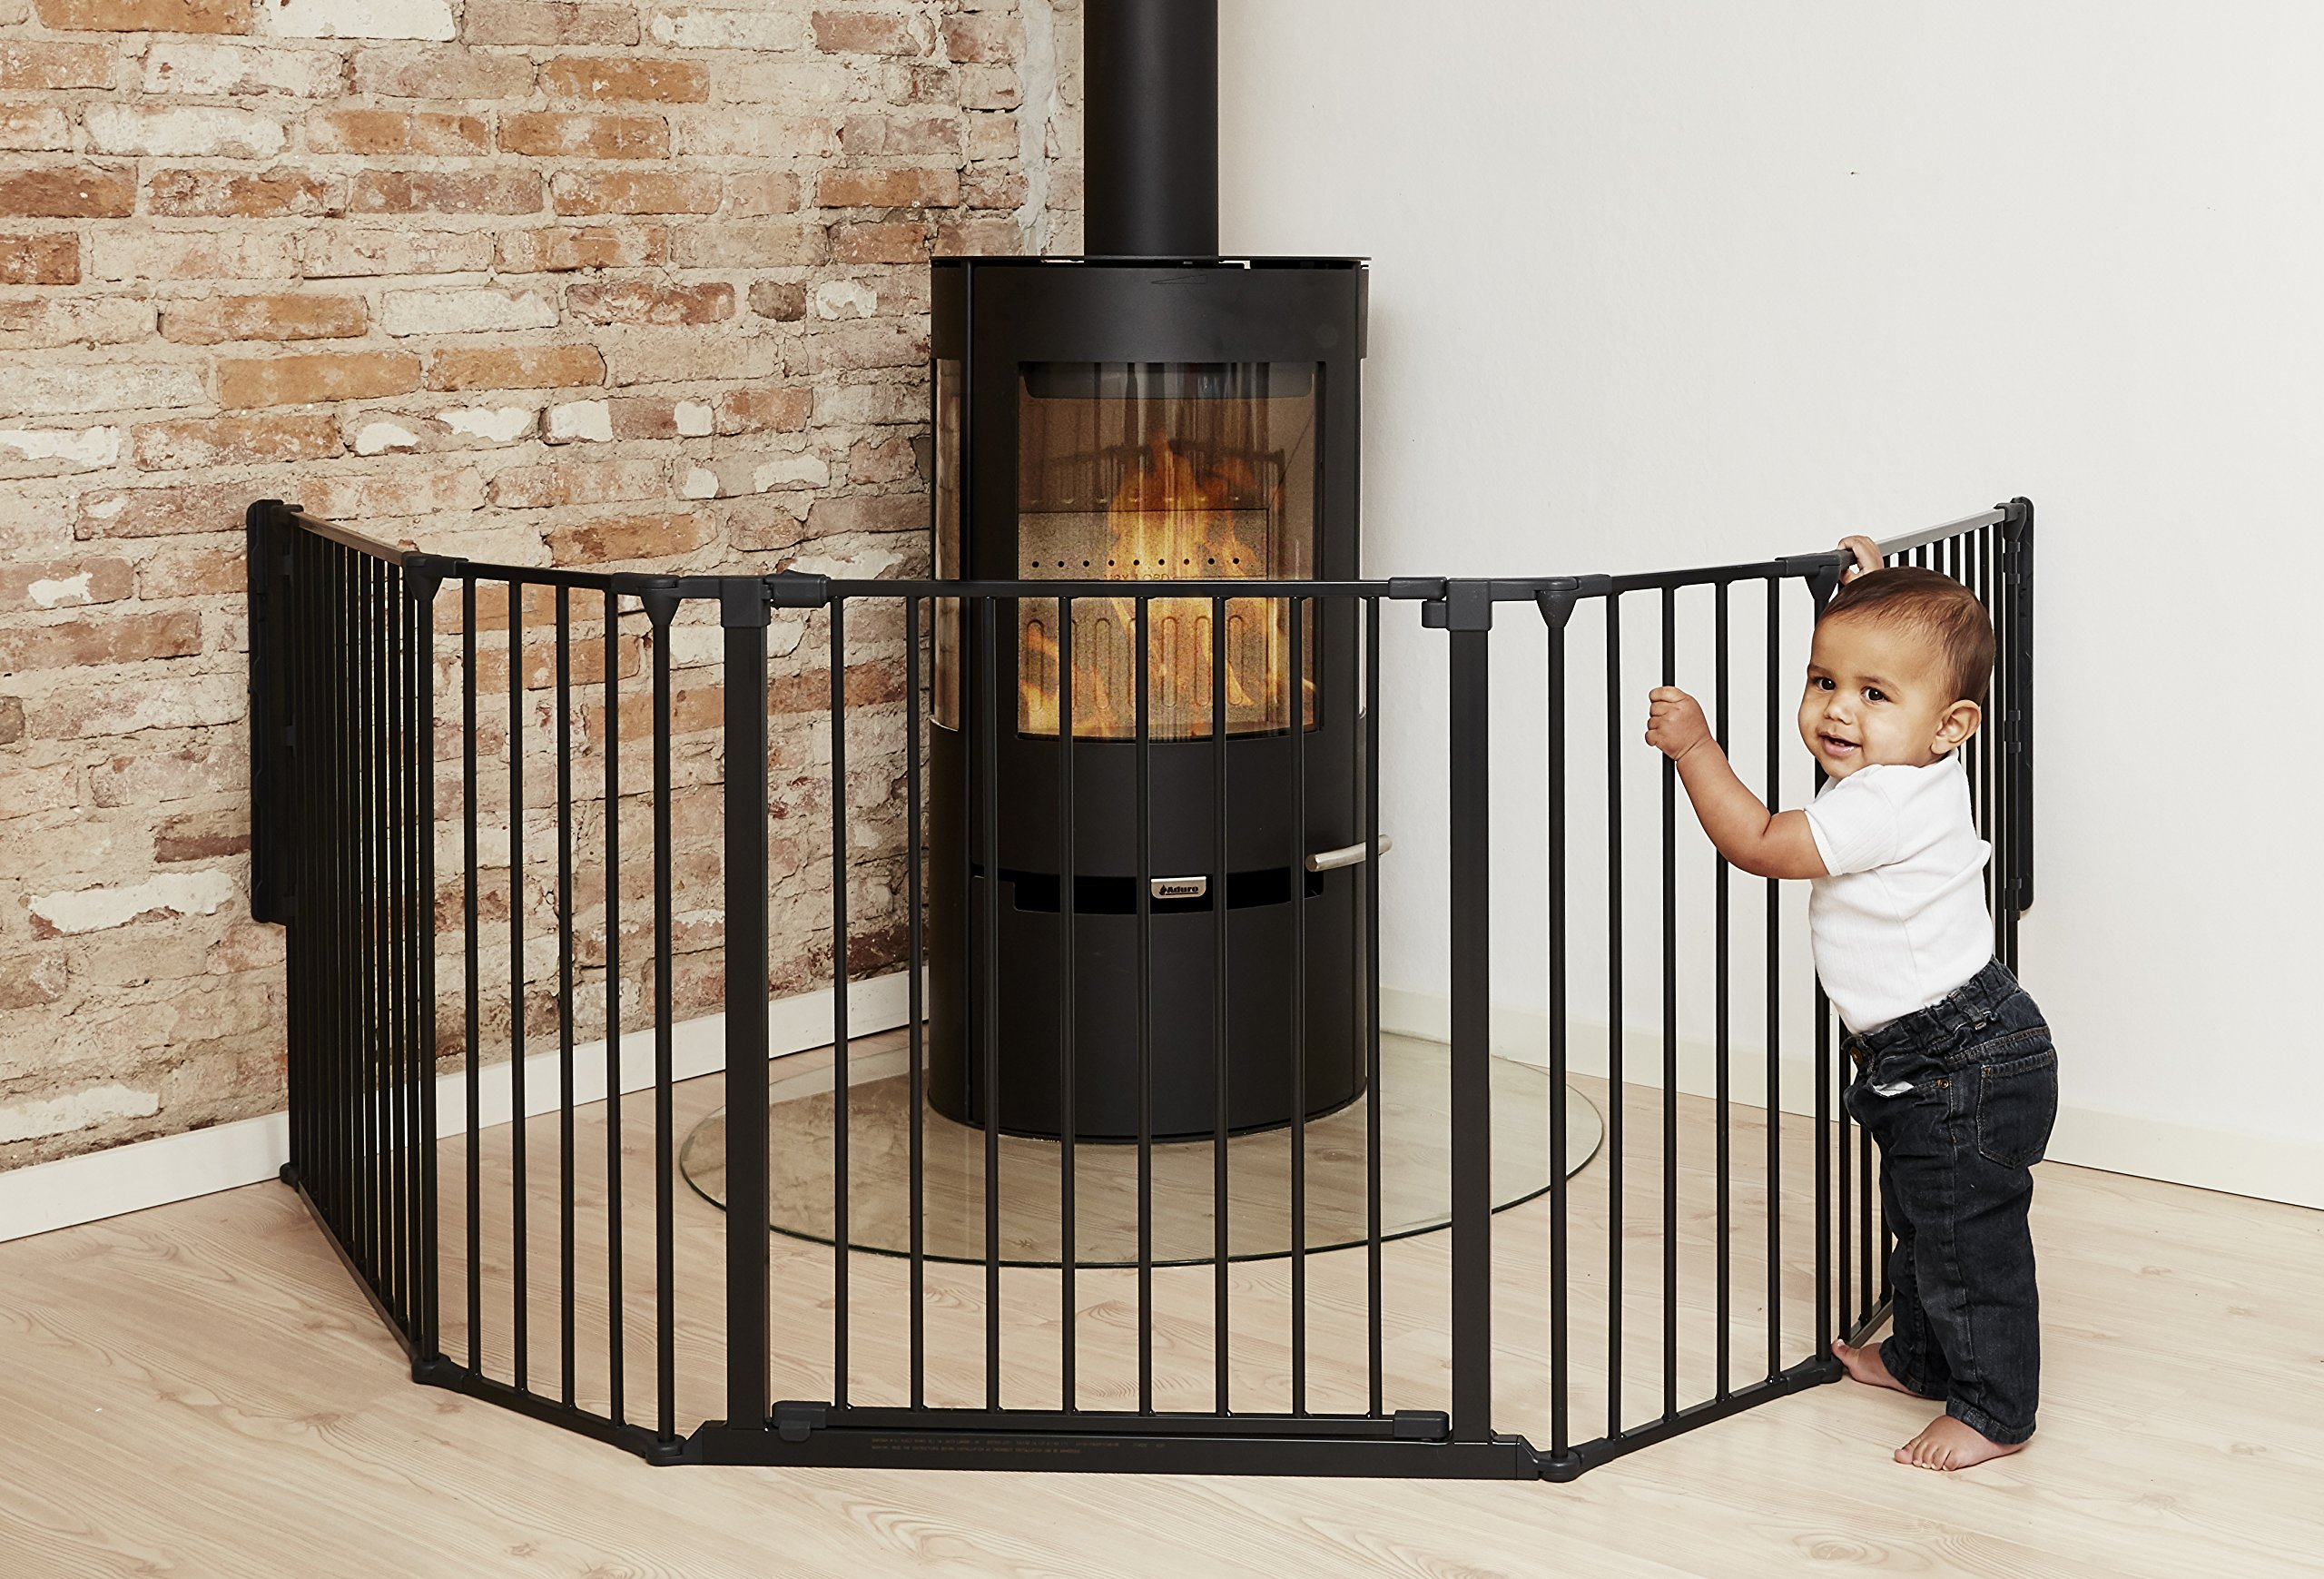 BabyDan Hearth Gate/Room Divider (Extra Large, 90-278cm, Anthracite)  Only configure system fulfilling newest european safety standard Multi purpose hearth gate and room divider There are 5 panels in total, 1 larger 72cm gate section panel, 2 larger 72cm panels and 2 smaller 33cm side panels. For shipping purposes, the 2 smaller side panels are connected by the interlocking pole 2